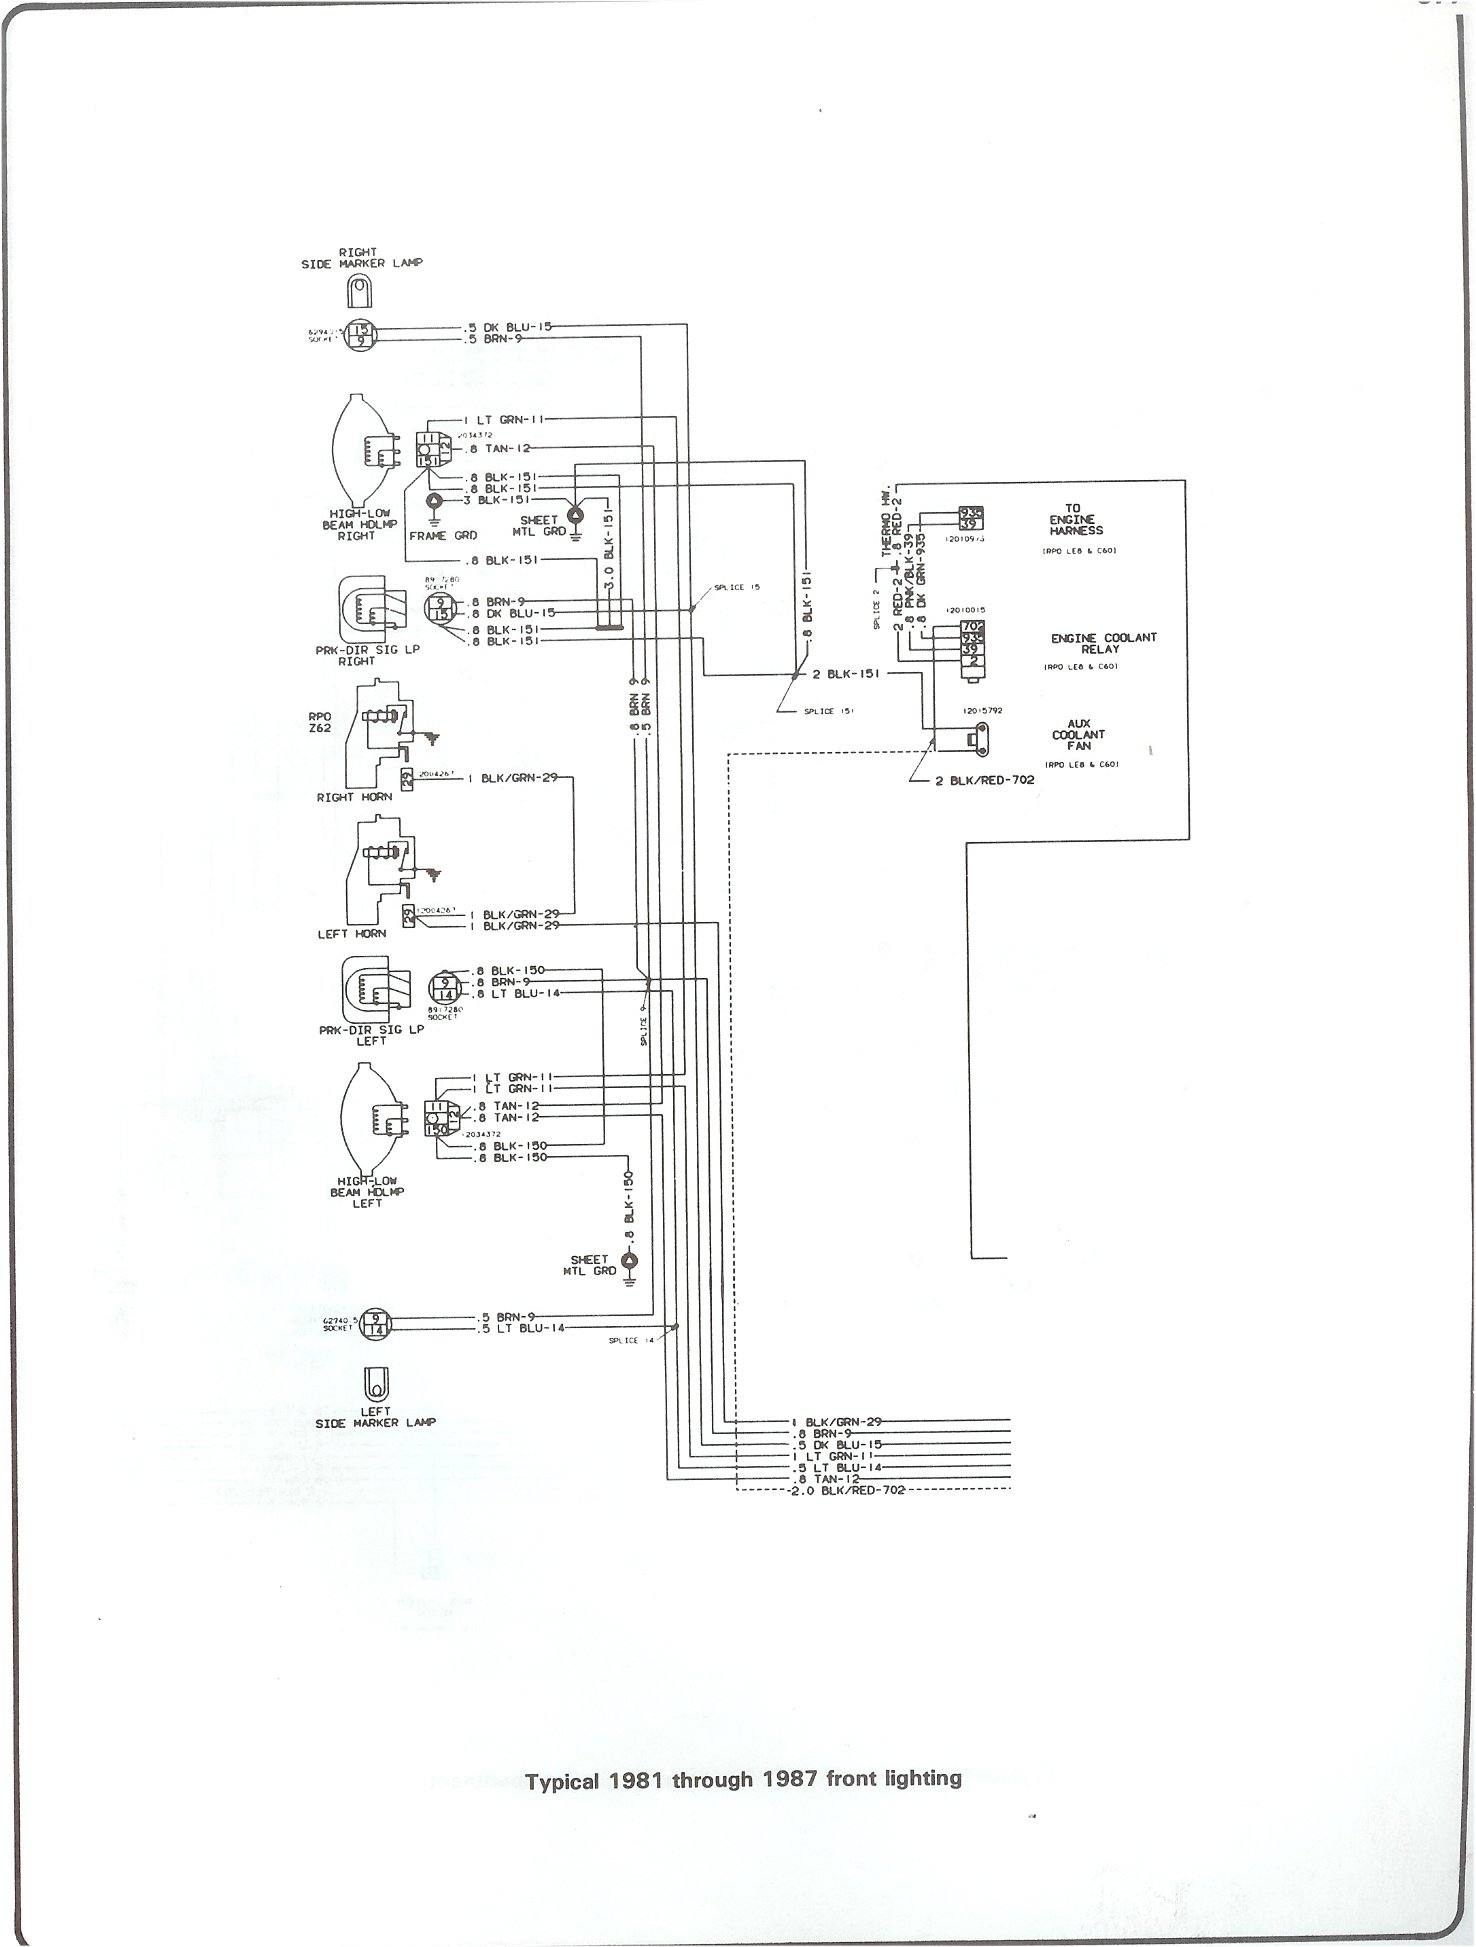 light switch wiring diagram 72 chevy nova